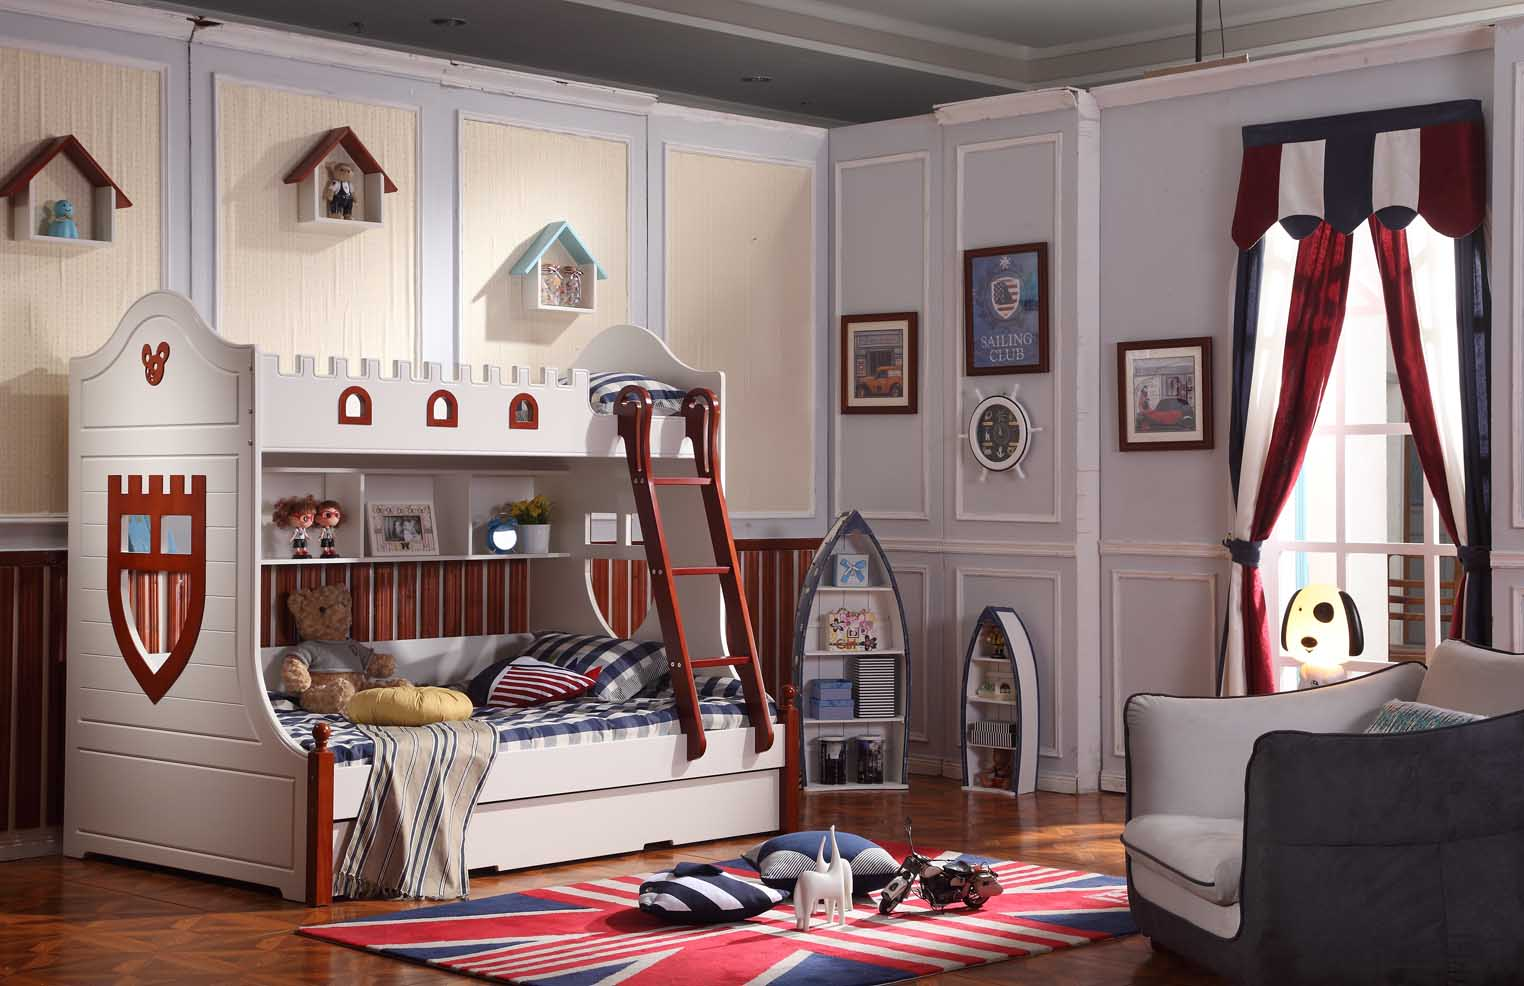 Cheap Kids Beds Online Buy Bunk Beds For Kids Online At Kids Kouch India